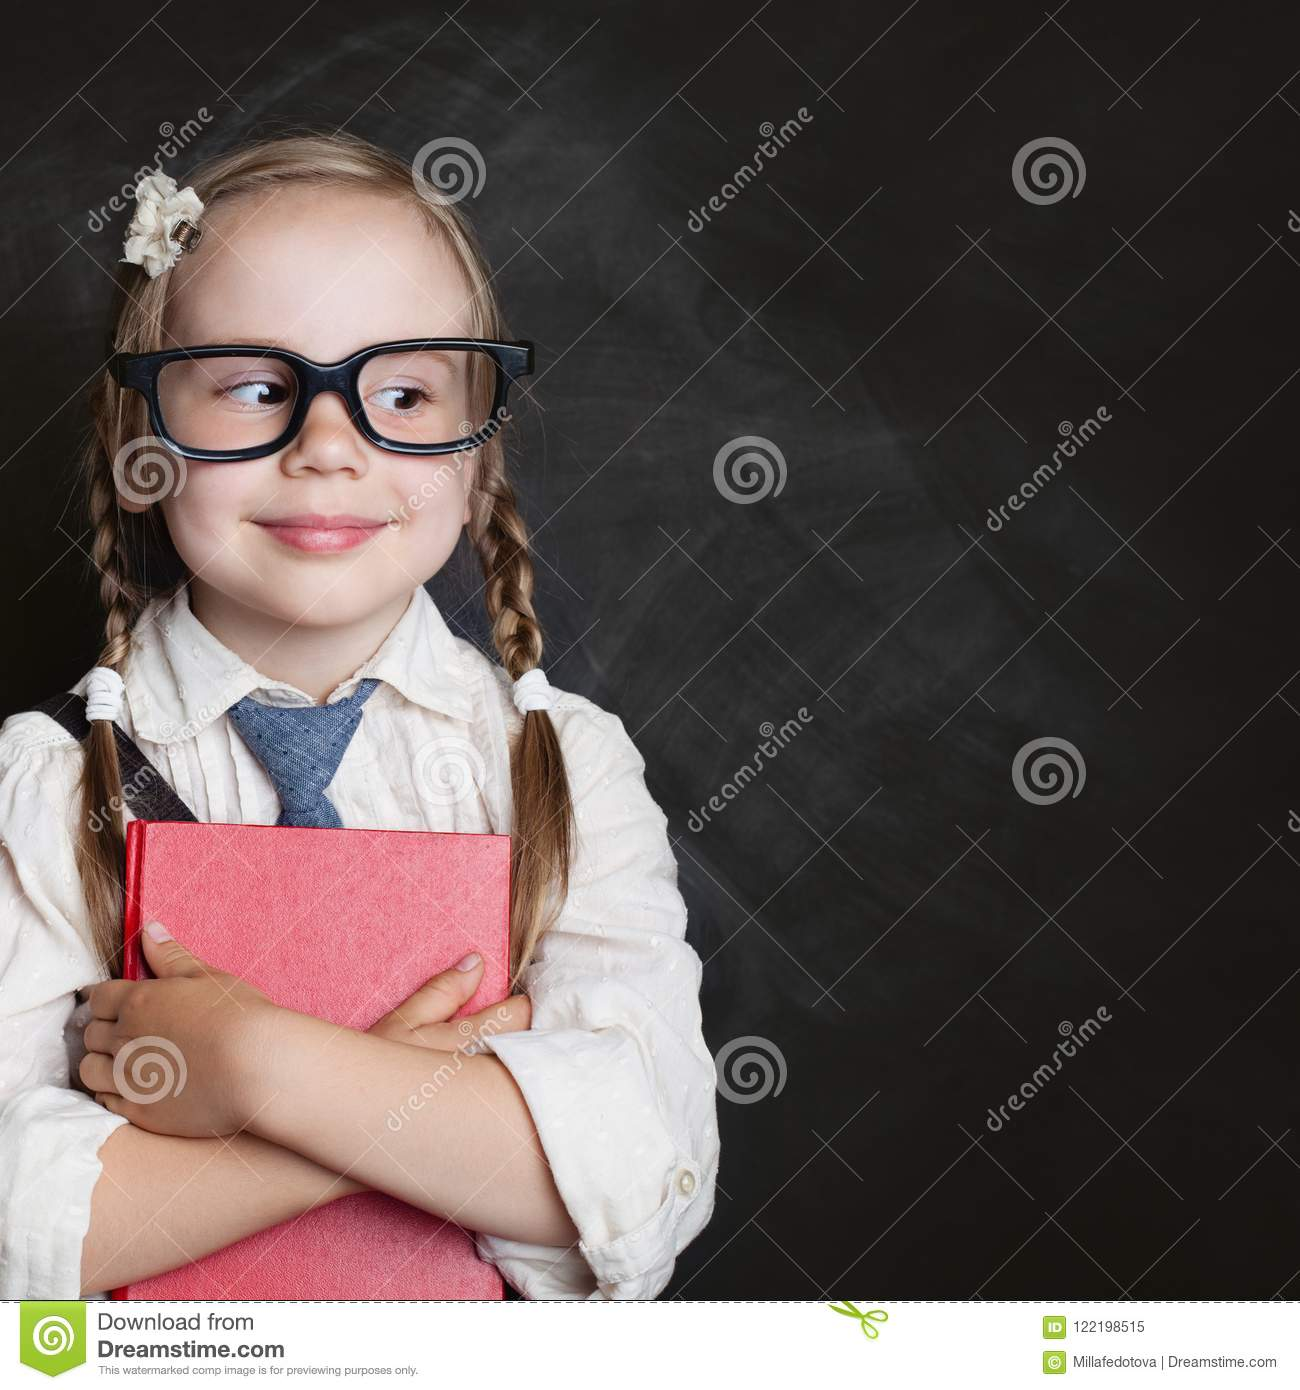 Kids education and child reading concept. Cute child girl